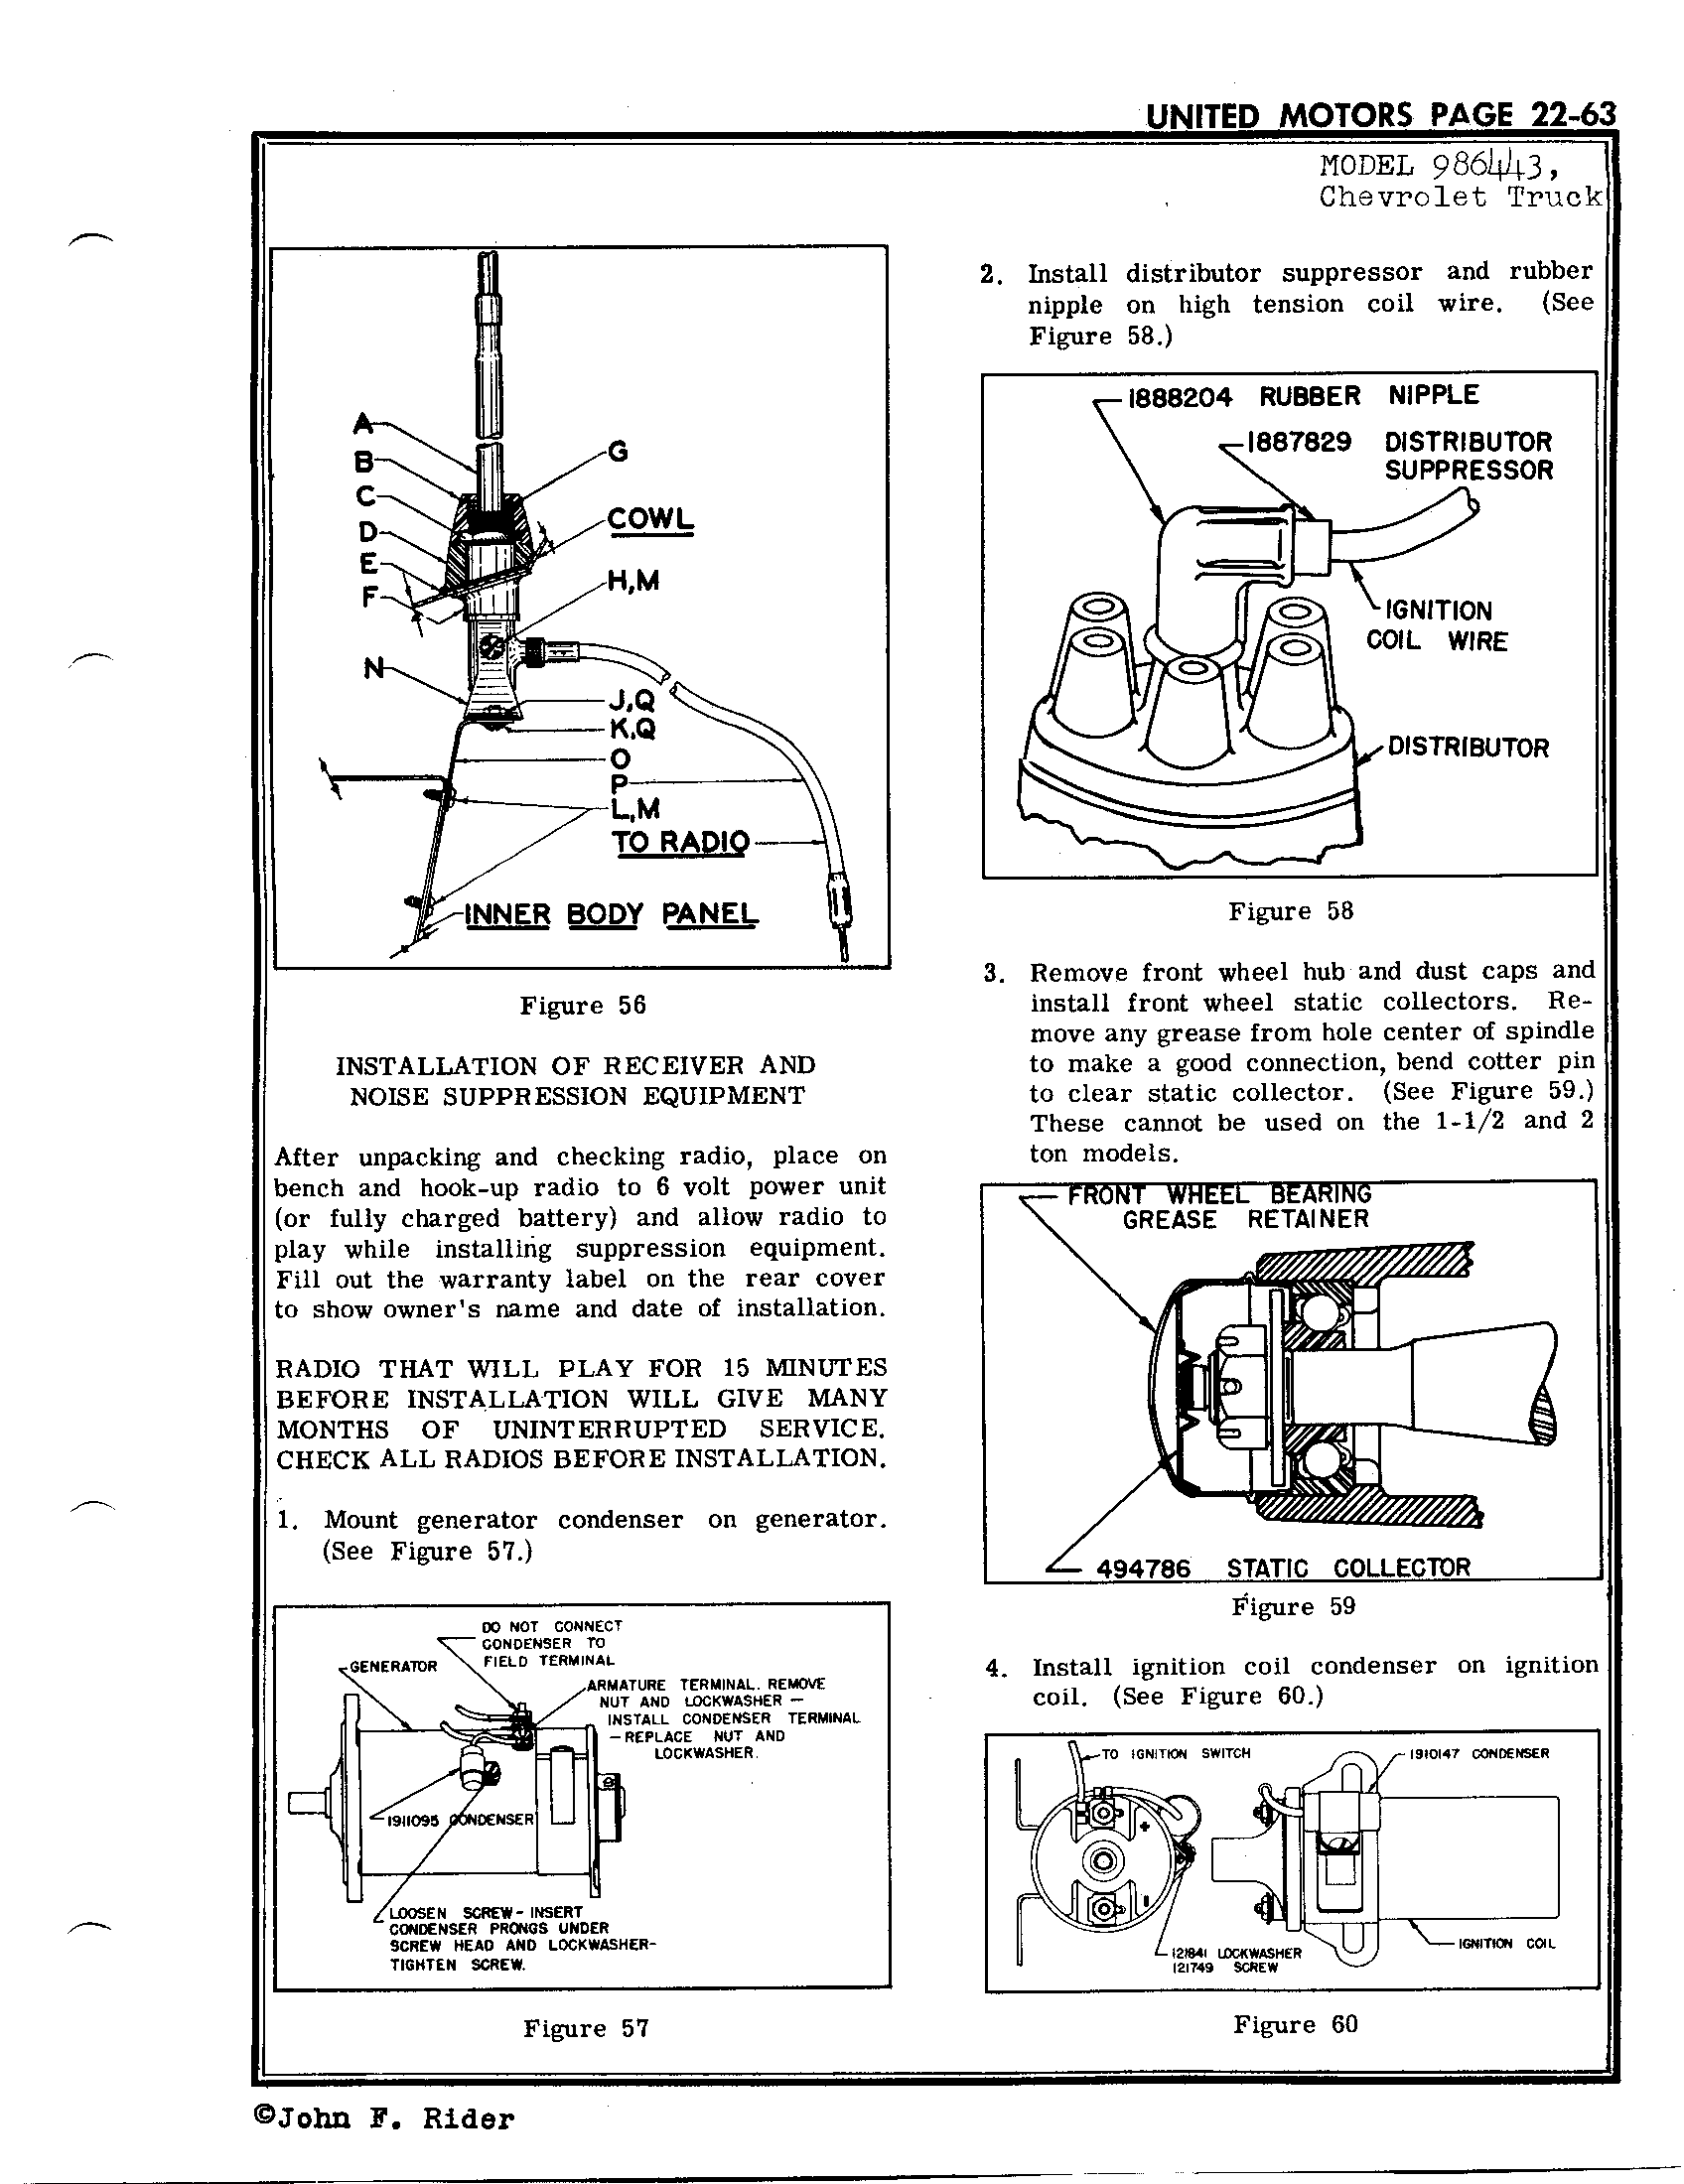 United Motors Service Delco 986443 Antique Electronic Supply Wiring 6 Volt Ignition Coil Circuit Diagram Page 59 Kb Rider Manual Volume 22